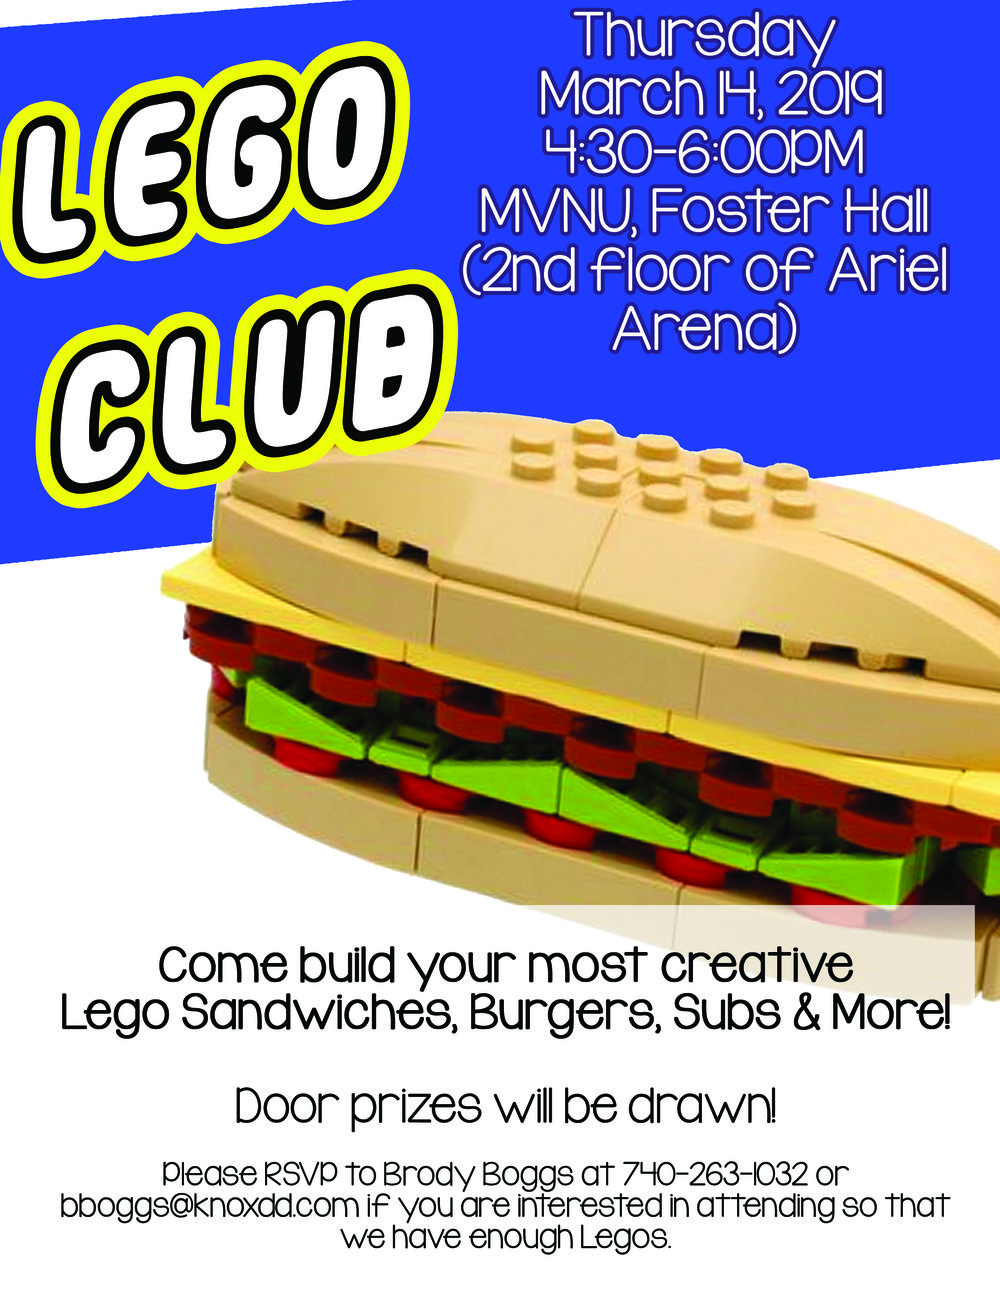 Lego Club flyer March 14.jpg